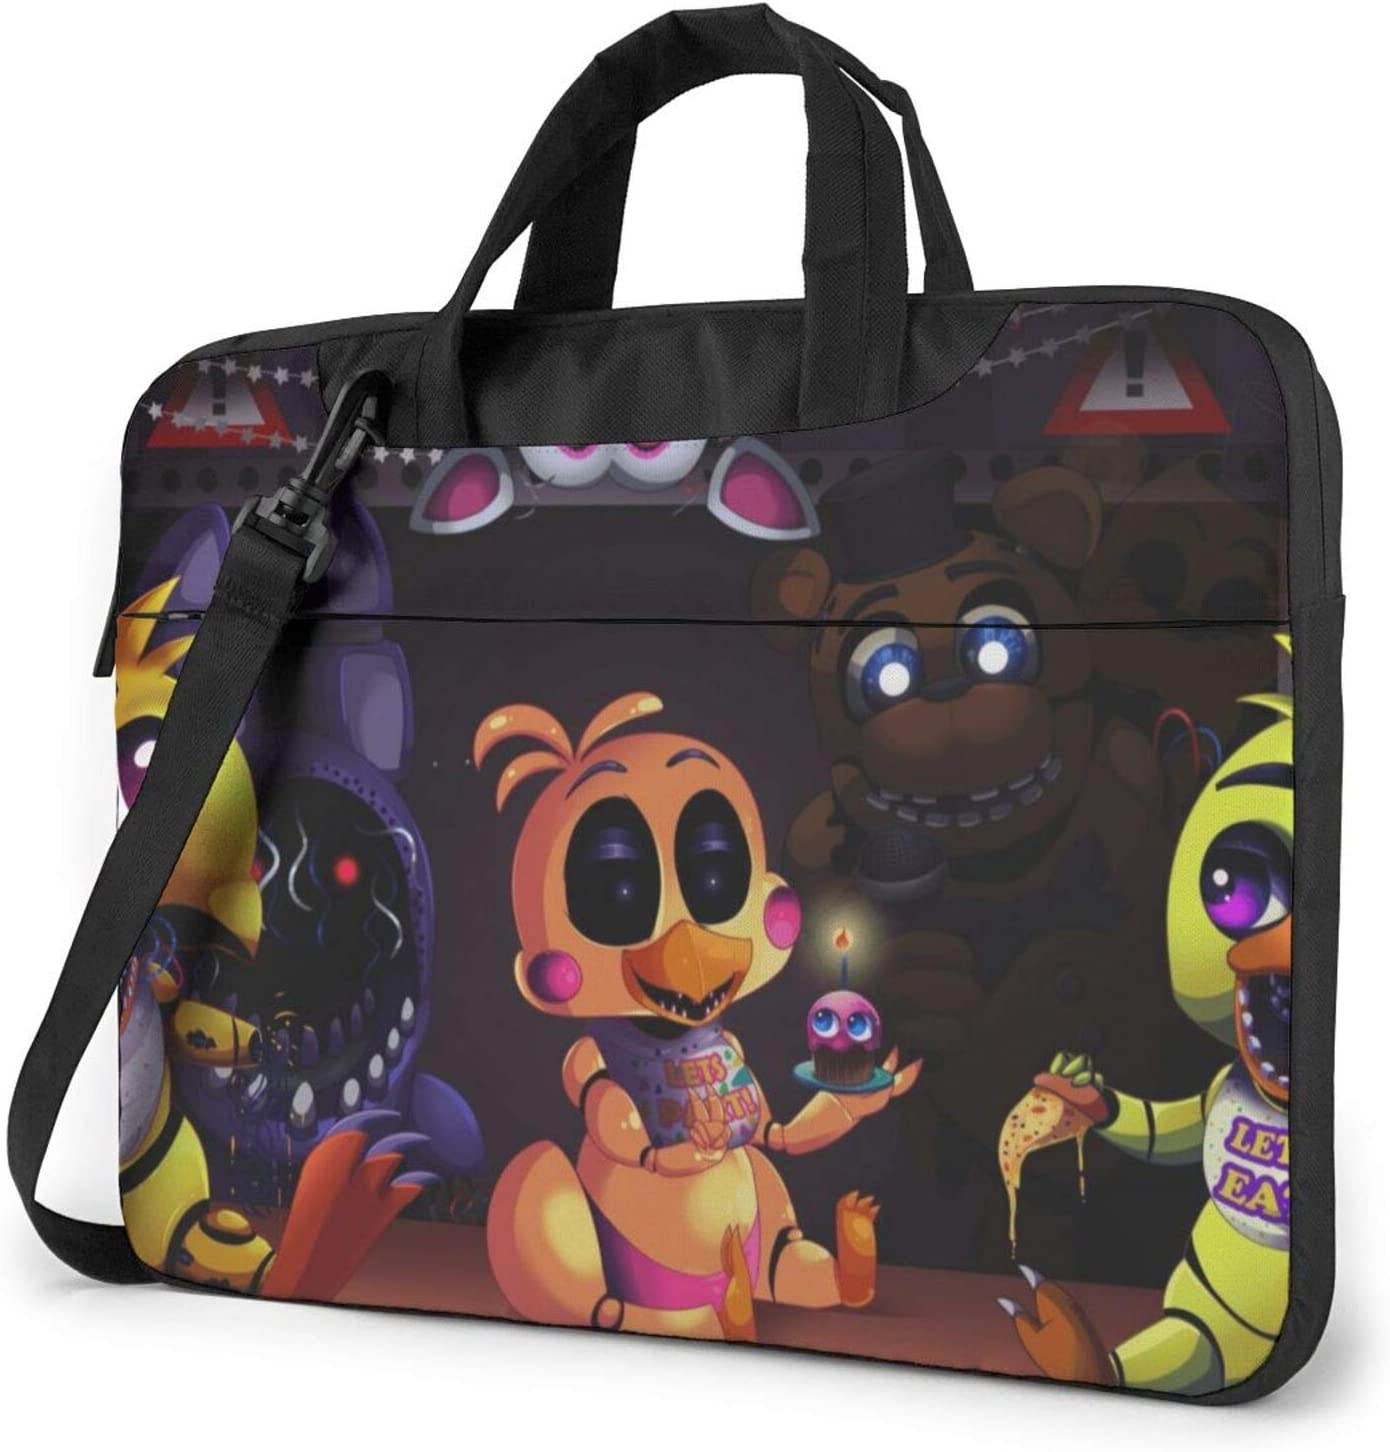 Five Nights at Freddy's Laptop Bag Tablet Portable Briefcase Protective Case Cover Messenger Bags 15.6 inch